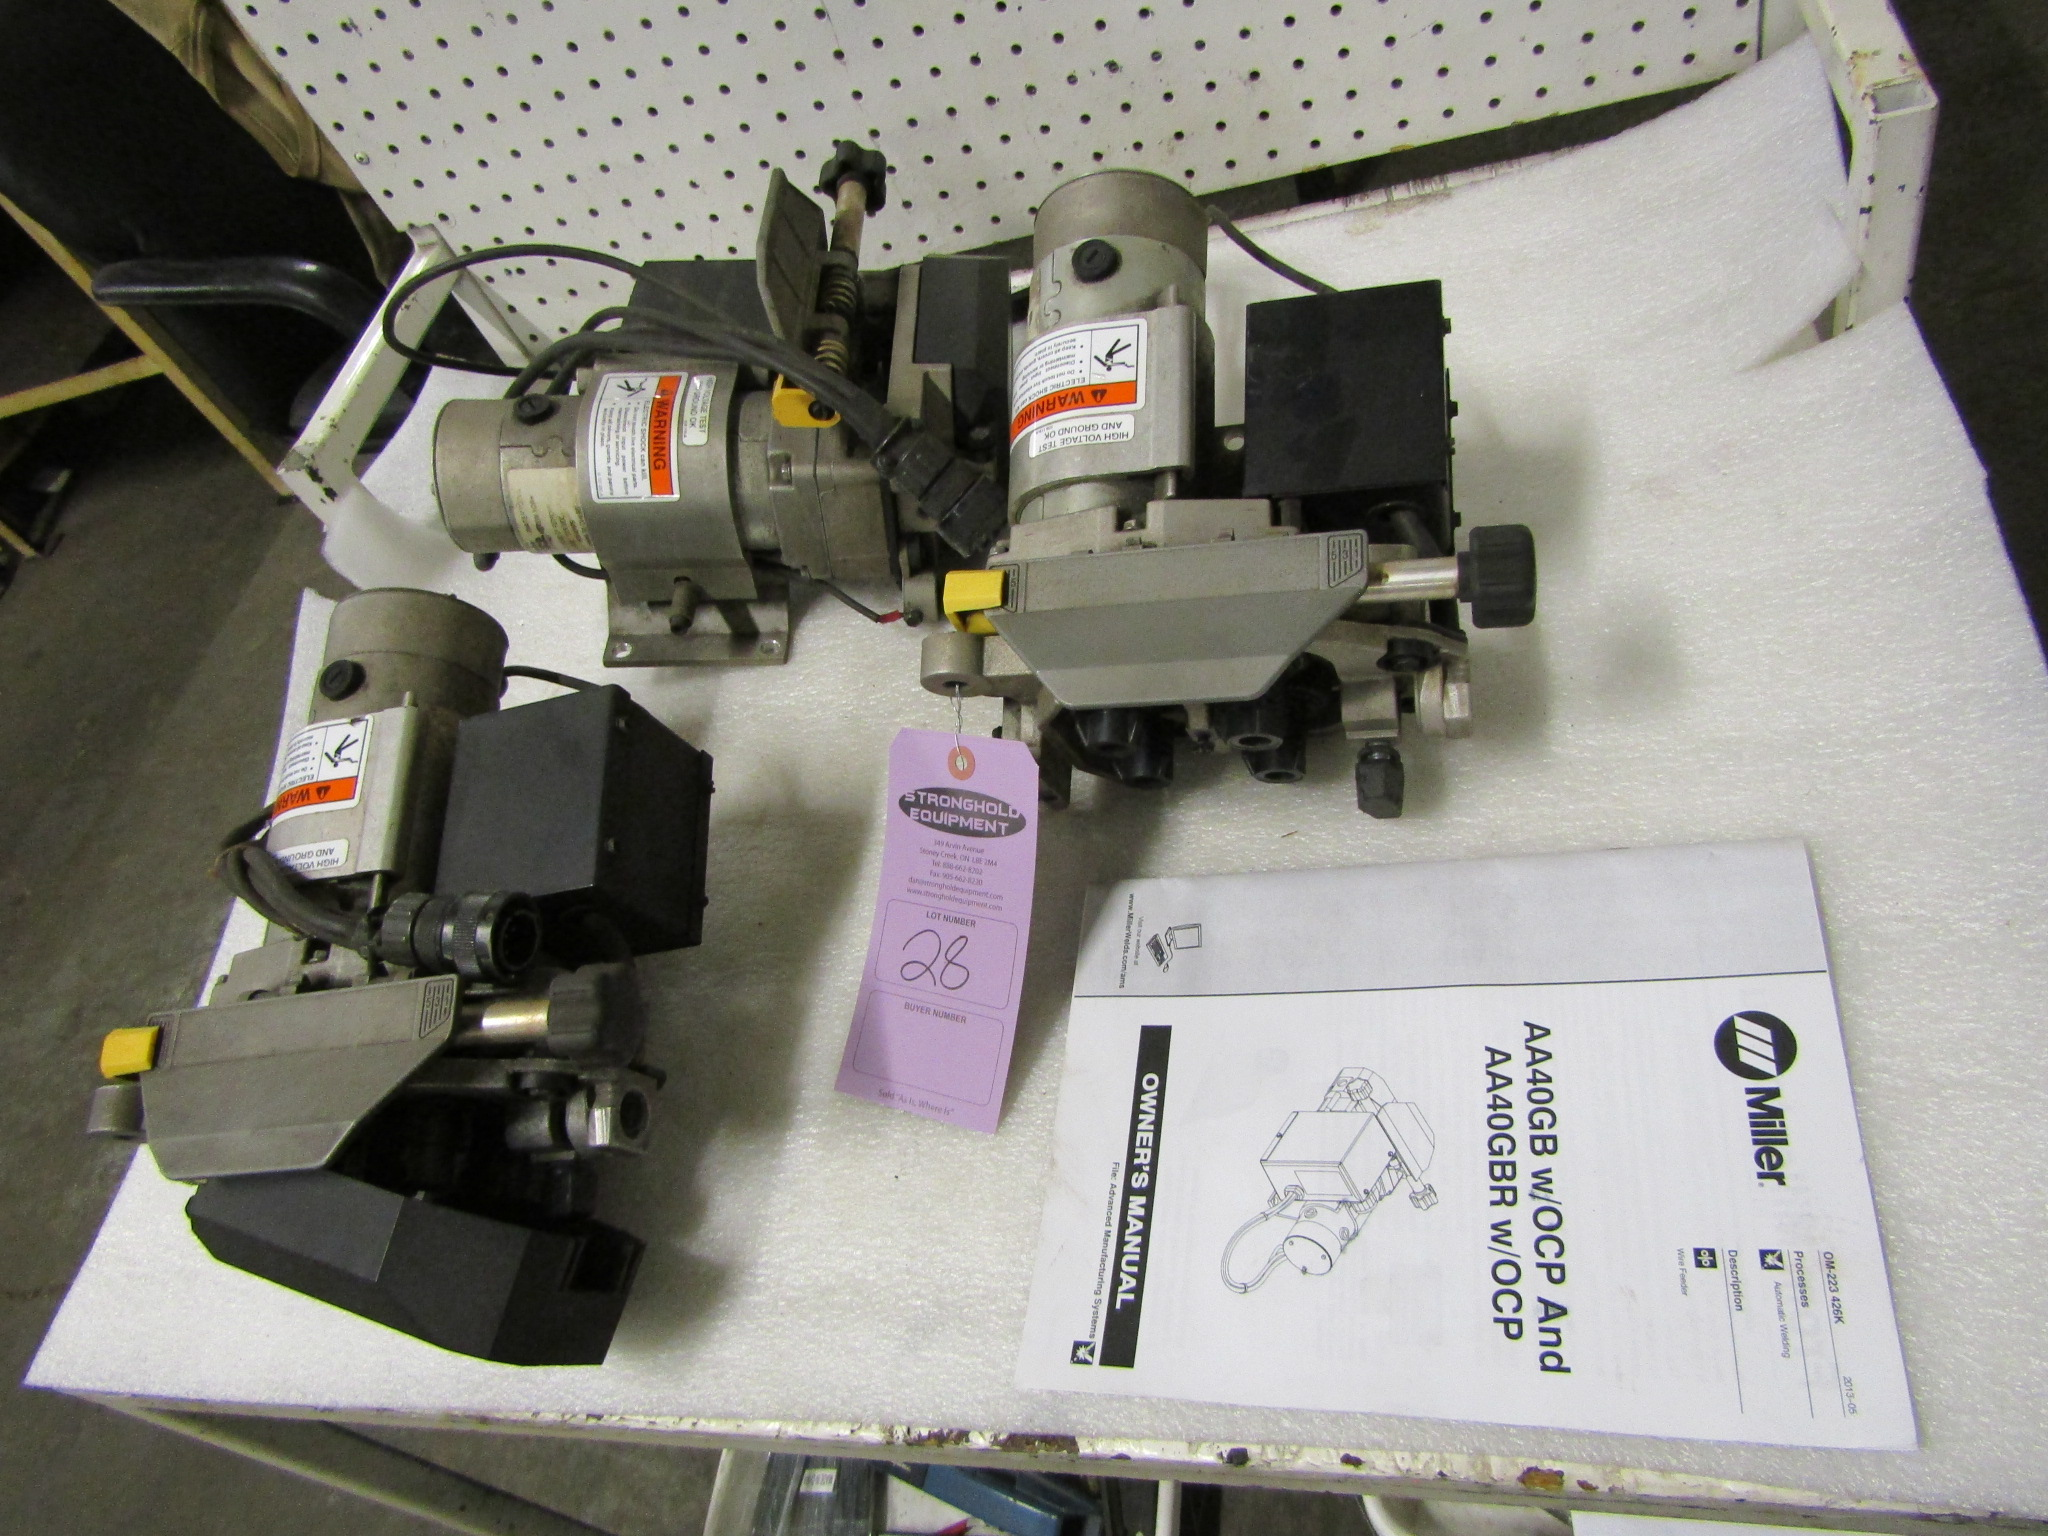 Lot of 3 Miller Robotic Welding wire feeders - 4-wheel units with manual